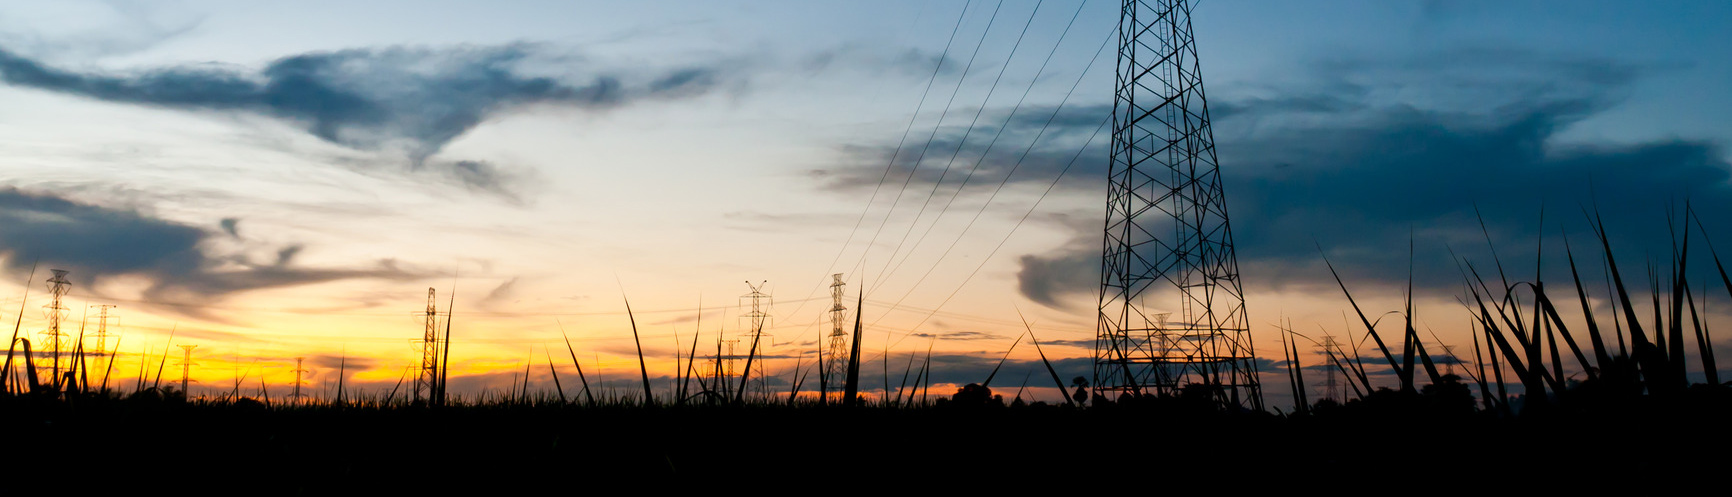 electricity_poles_in_twilight_time_m2.jpg